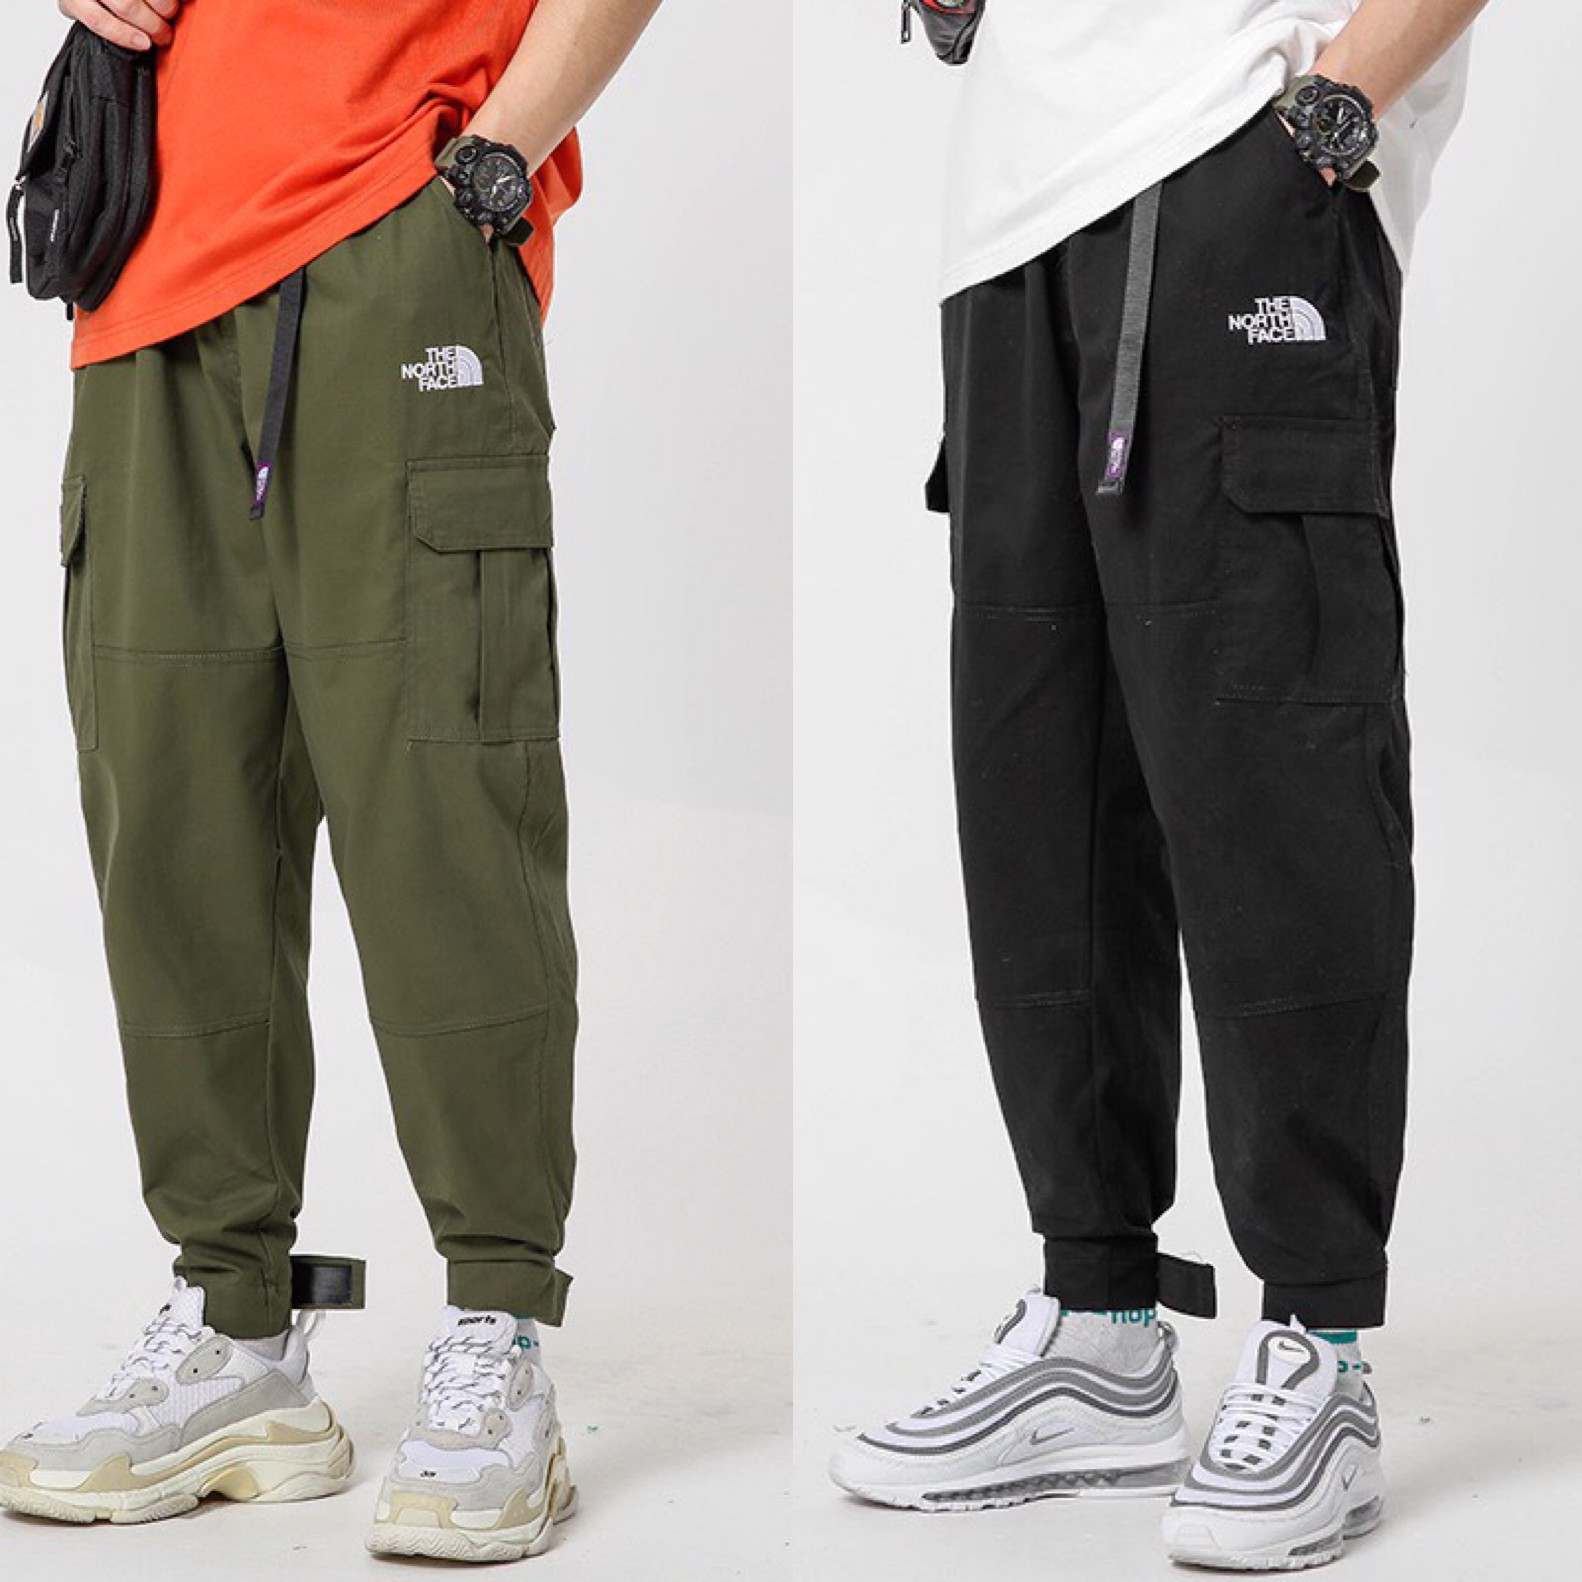 THE NORTH FACE POCKET PANTS GREEN & BLACK